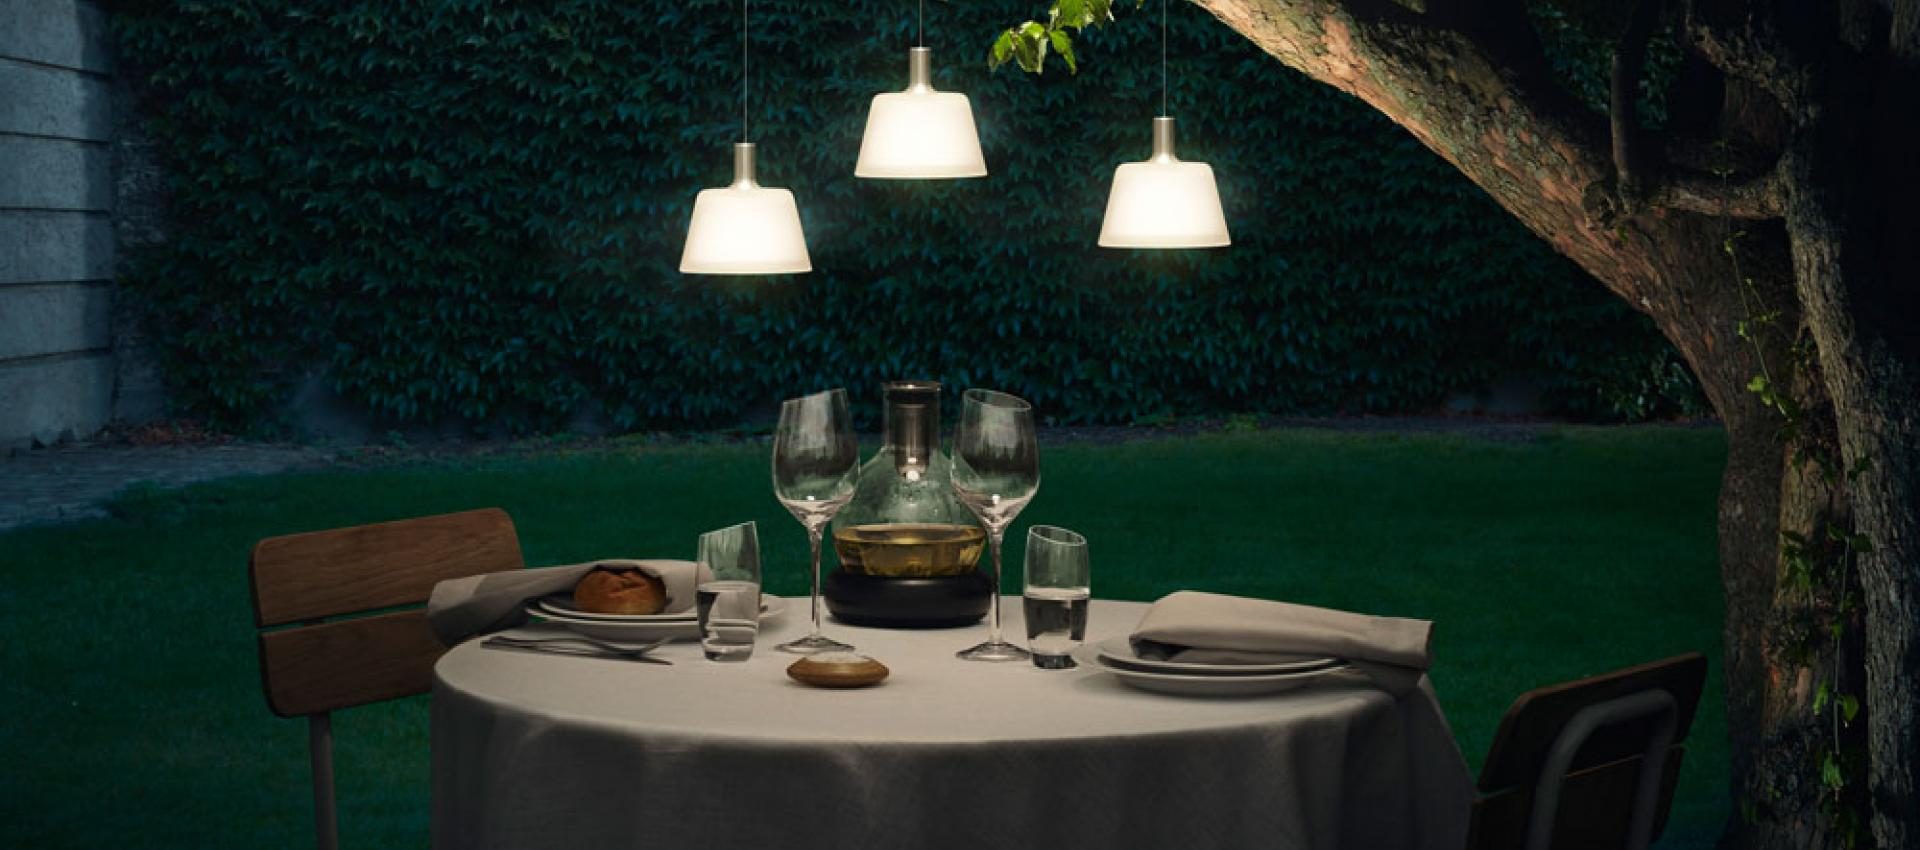 Jardin en lumiere | Sorel-Tracy & Cie